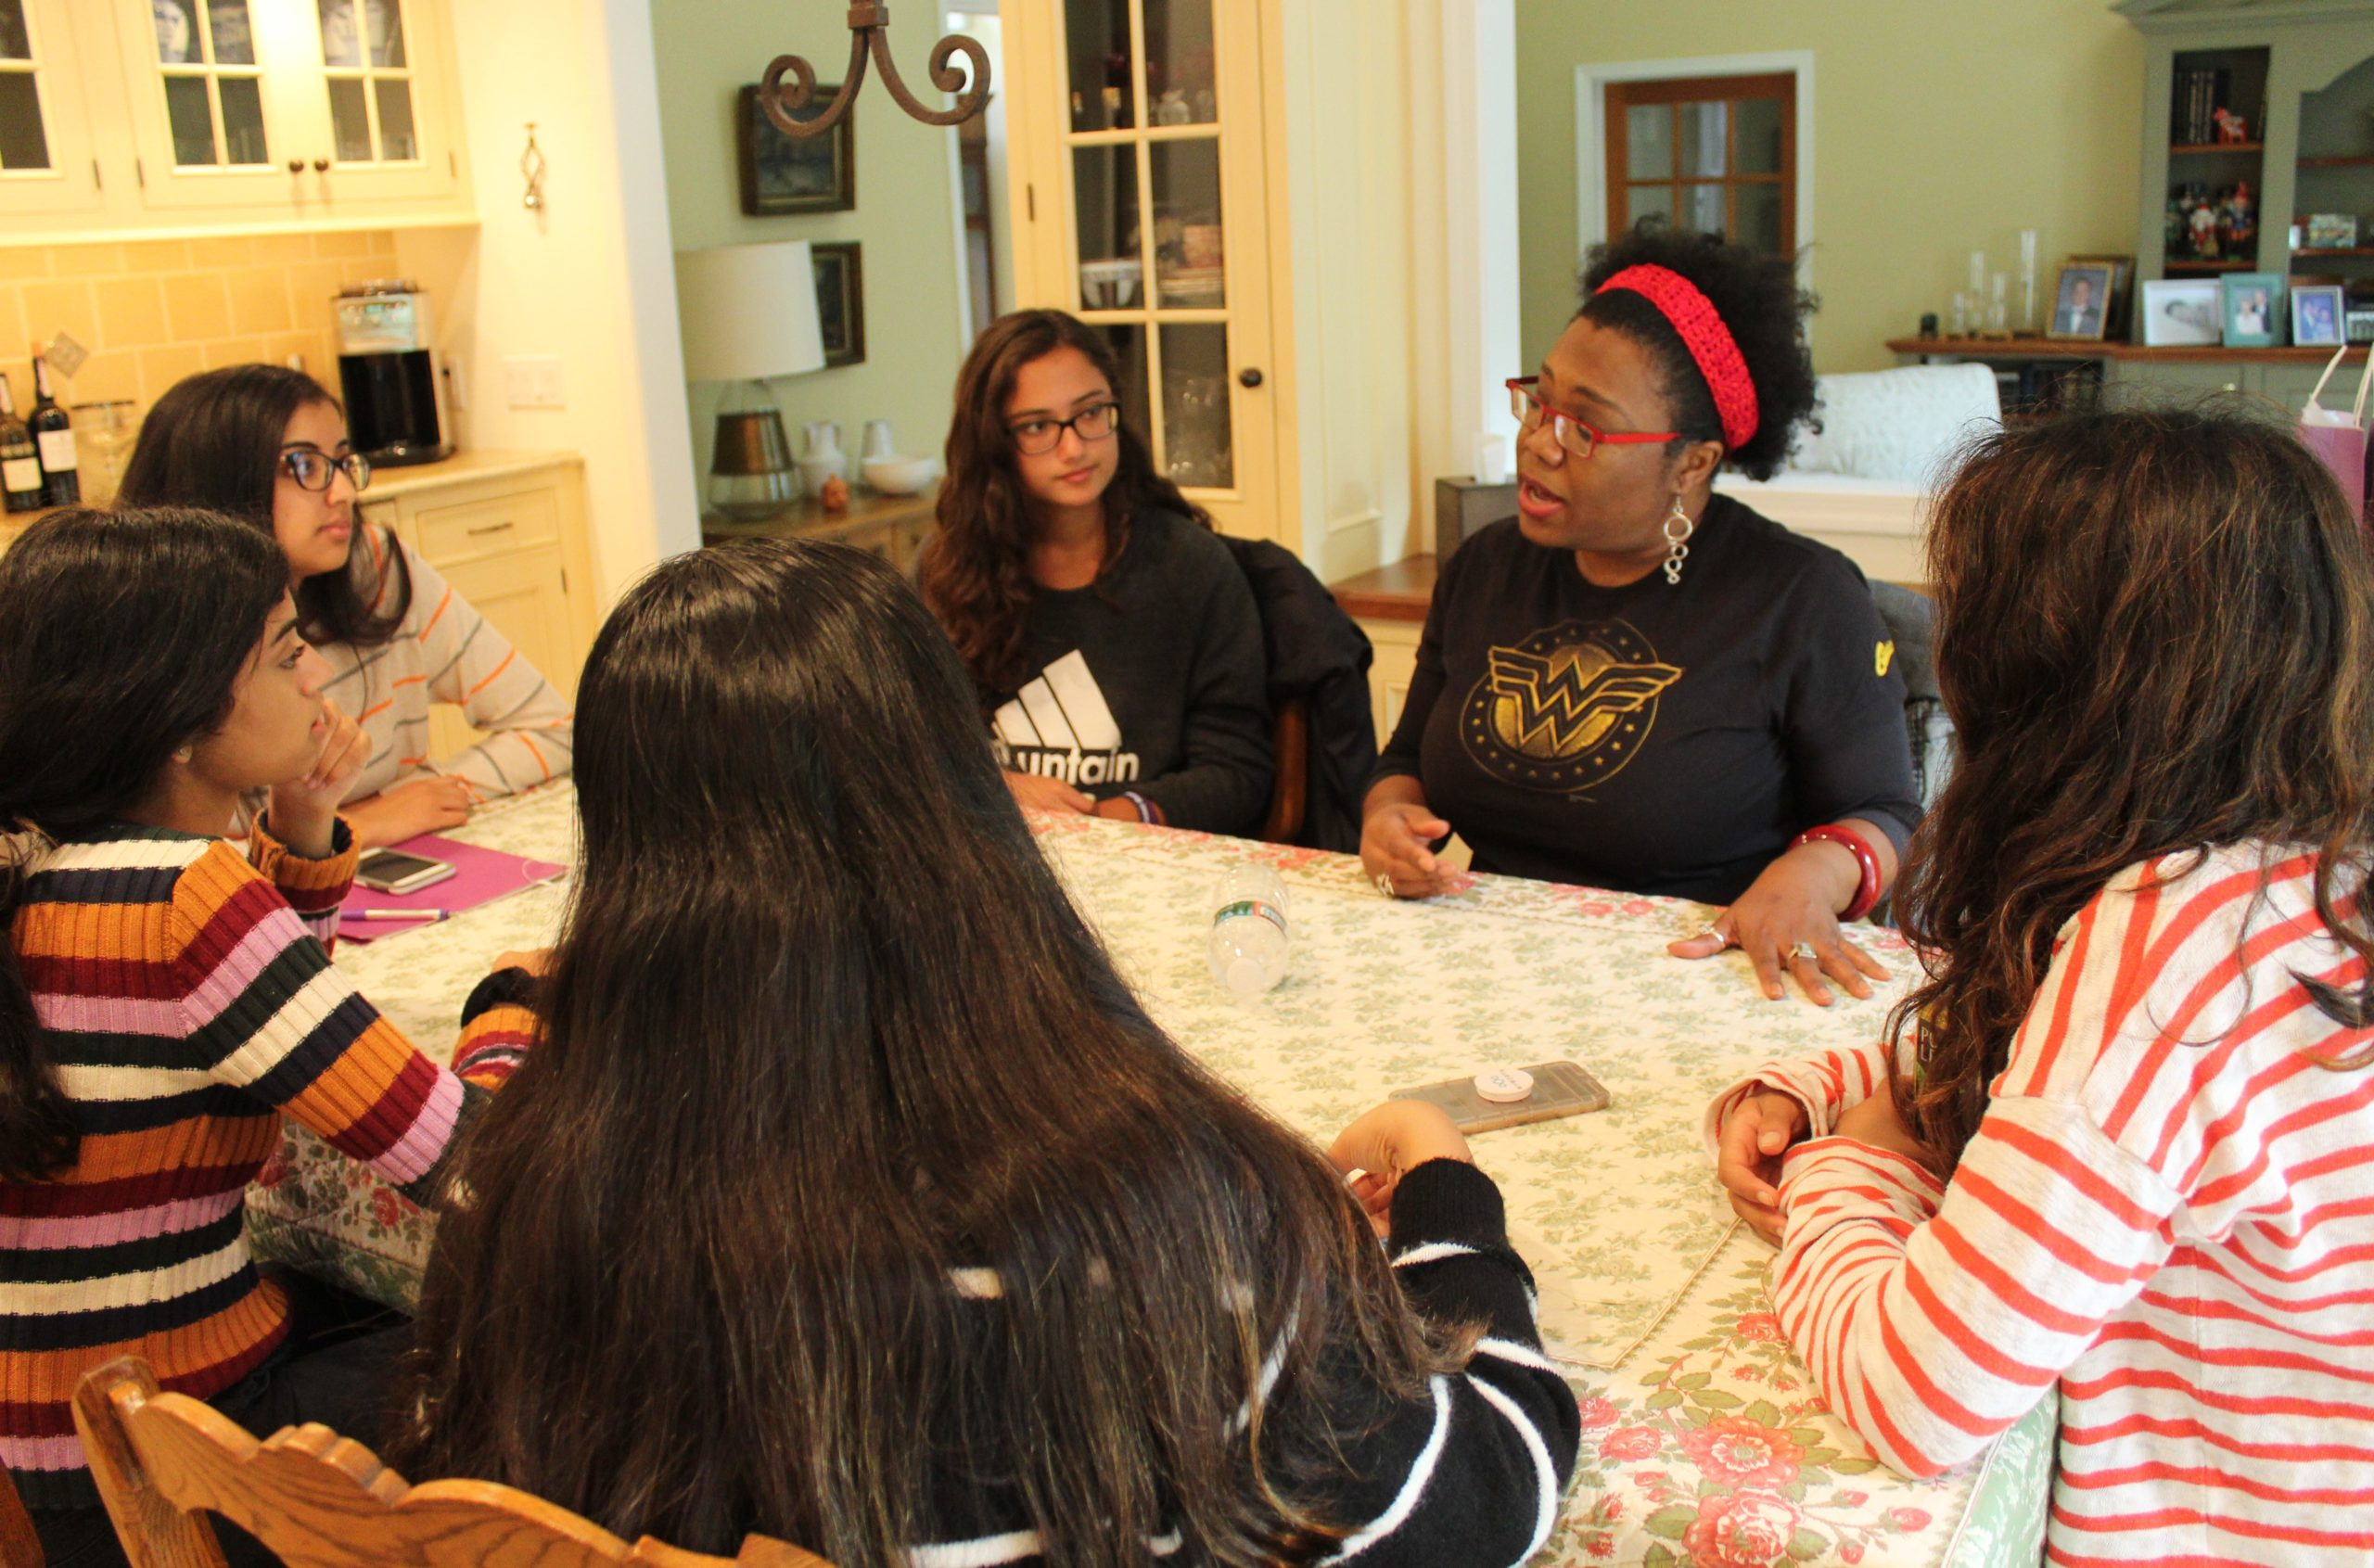 Henderson High School Student's Participation in CCFWG's Girls Advisory Board Shapes Her Future